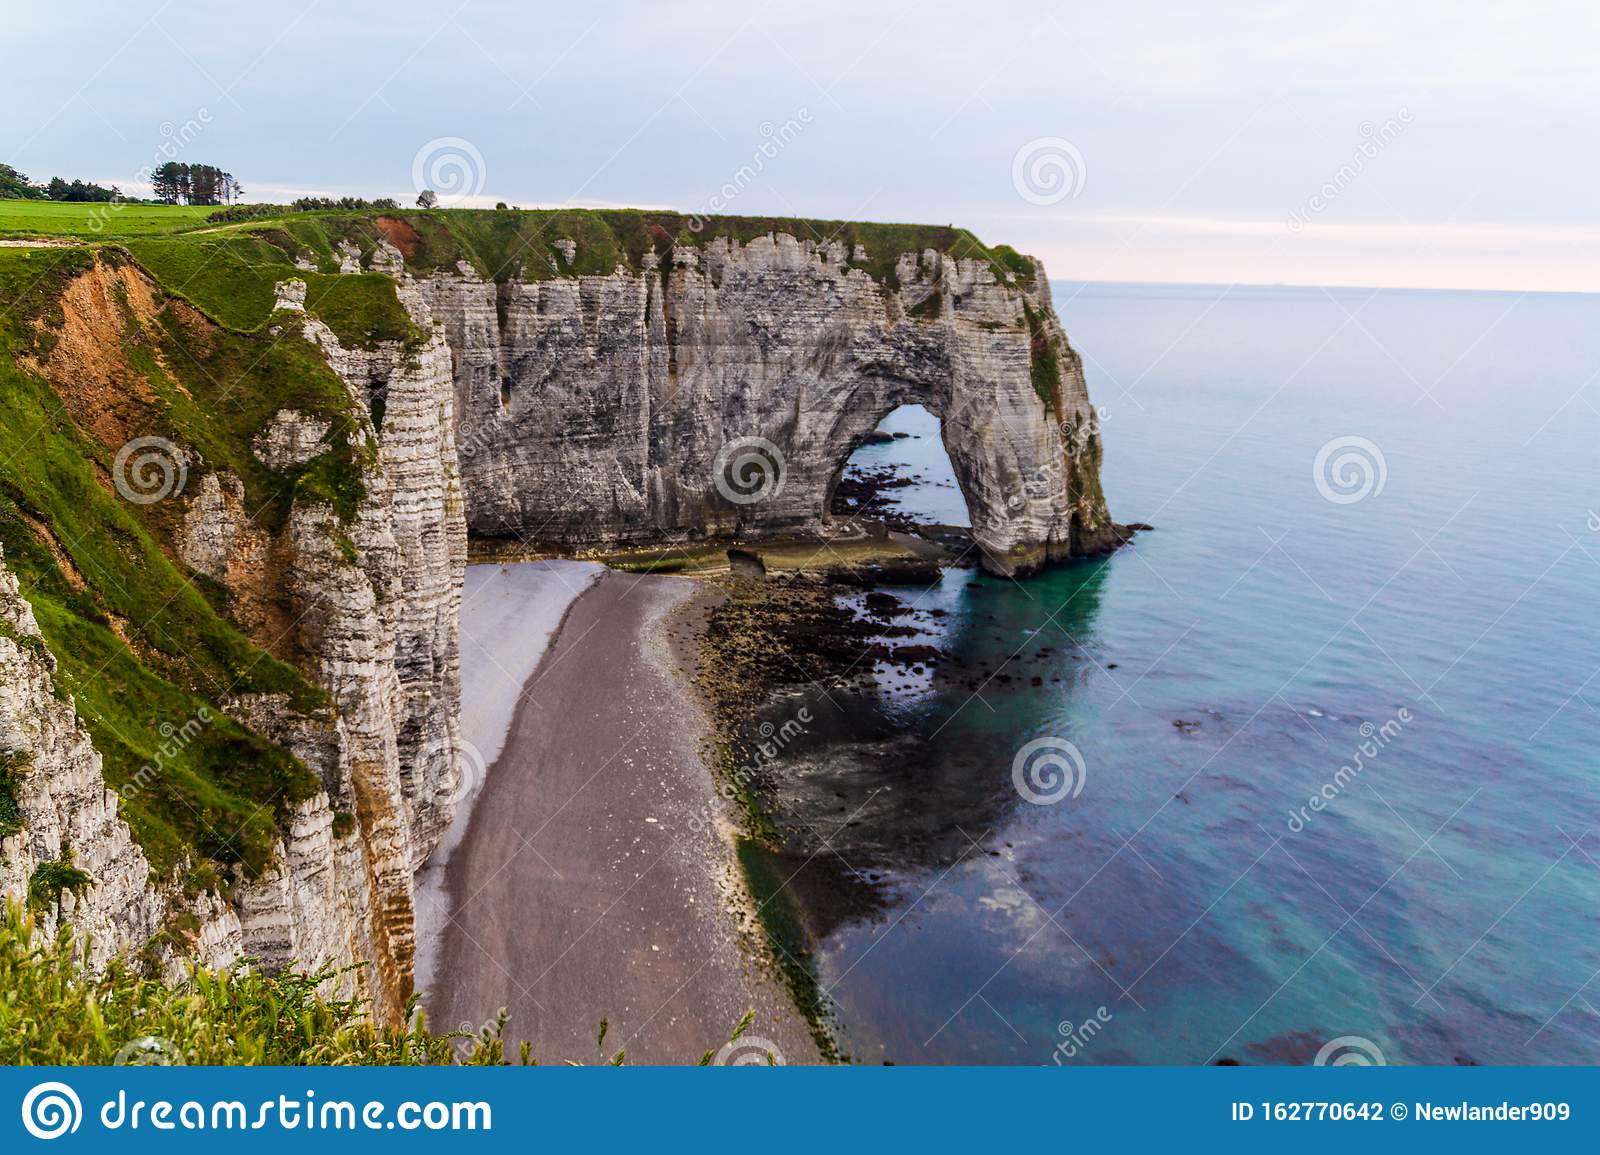 Landscape On The Cliffs Of Etretat France Stock Photo Image Of